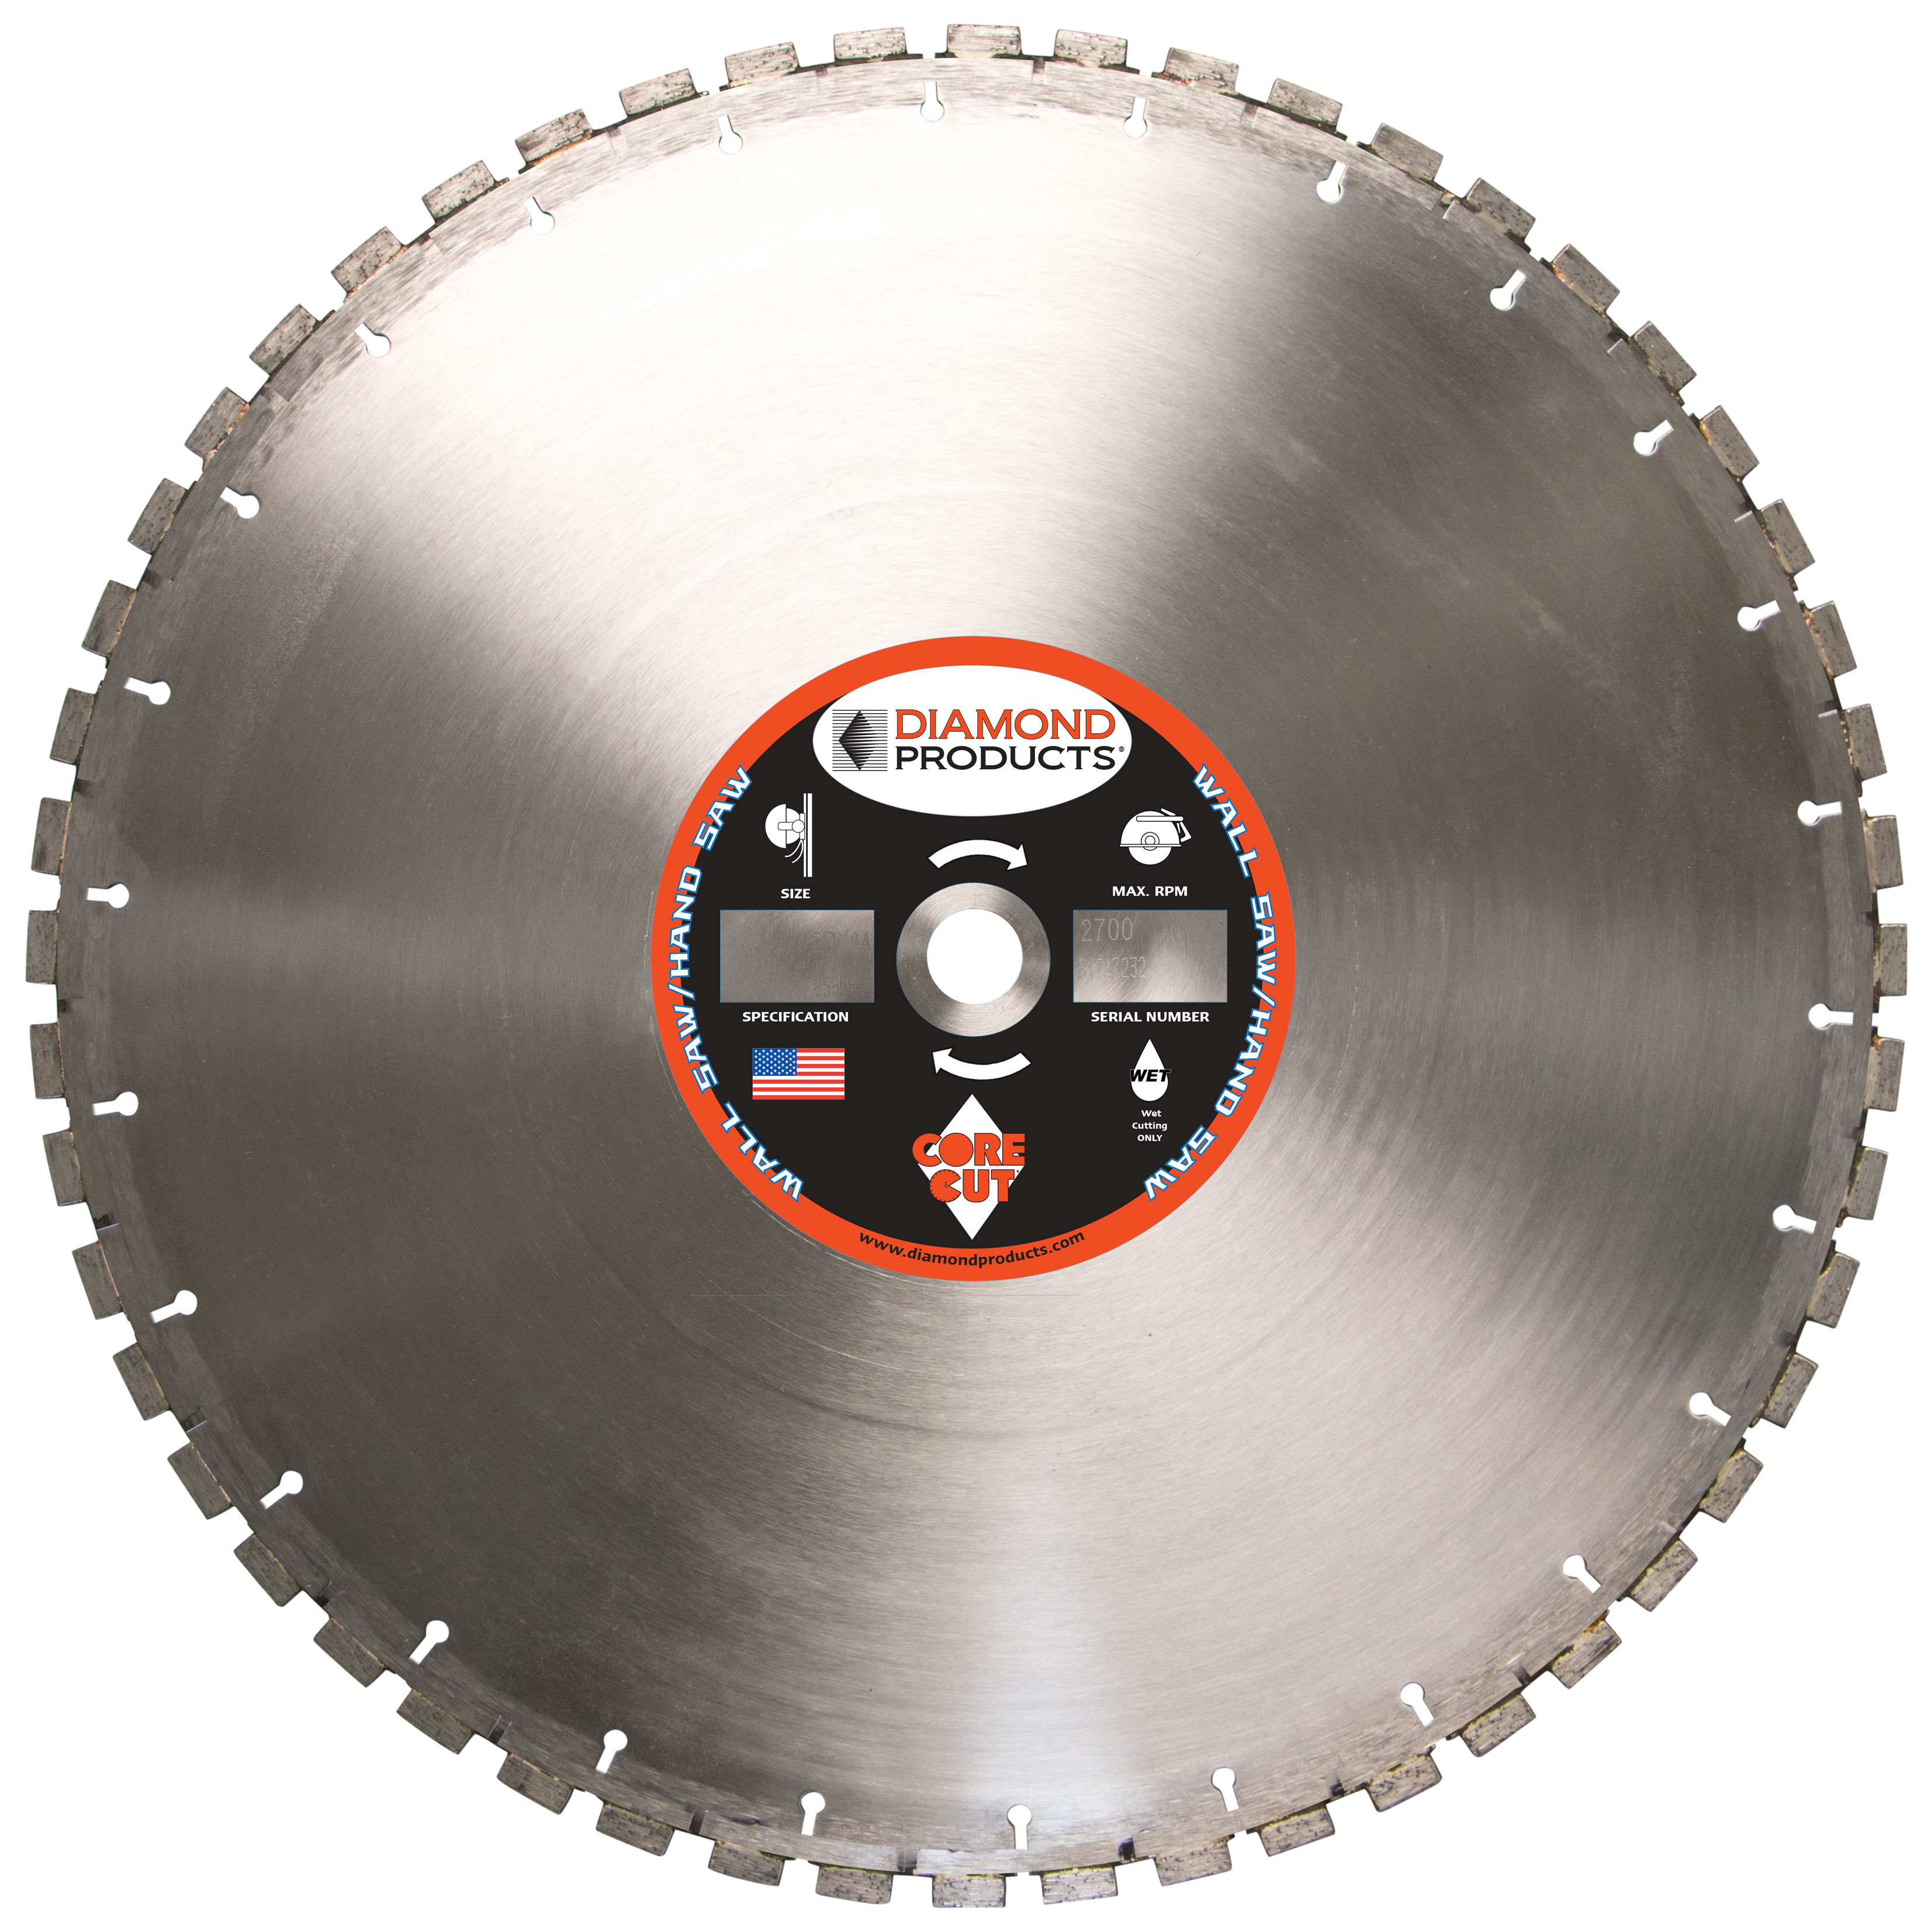 Hydraulic Hand Saw & Wall Saw Blades